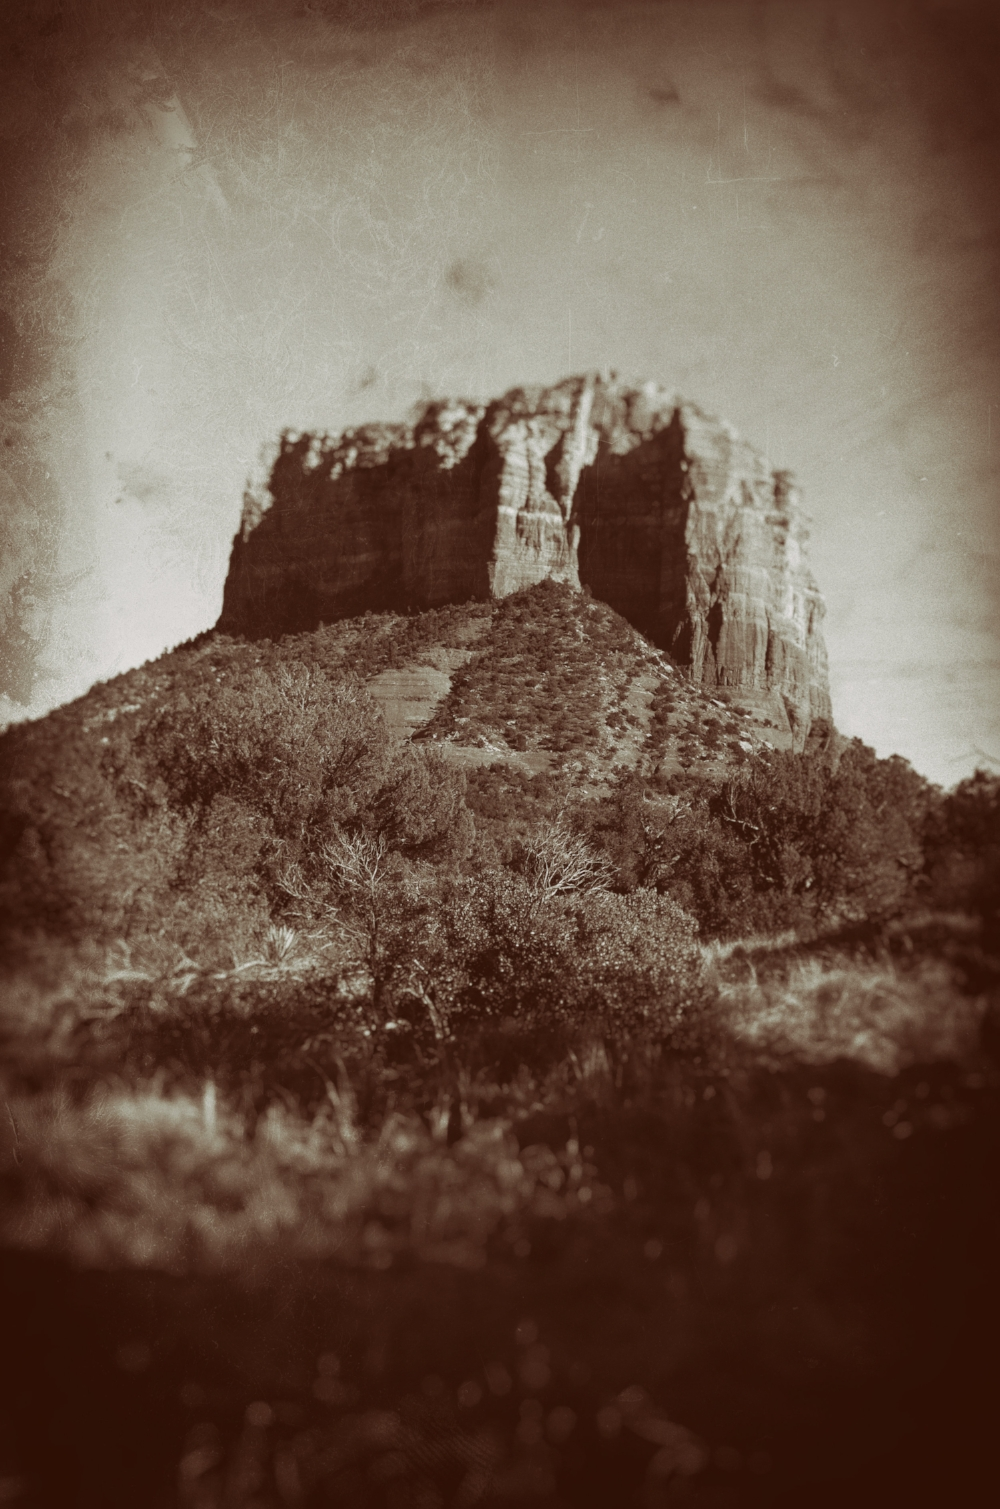 Fun with filters and Courthouse butte.